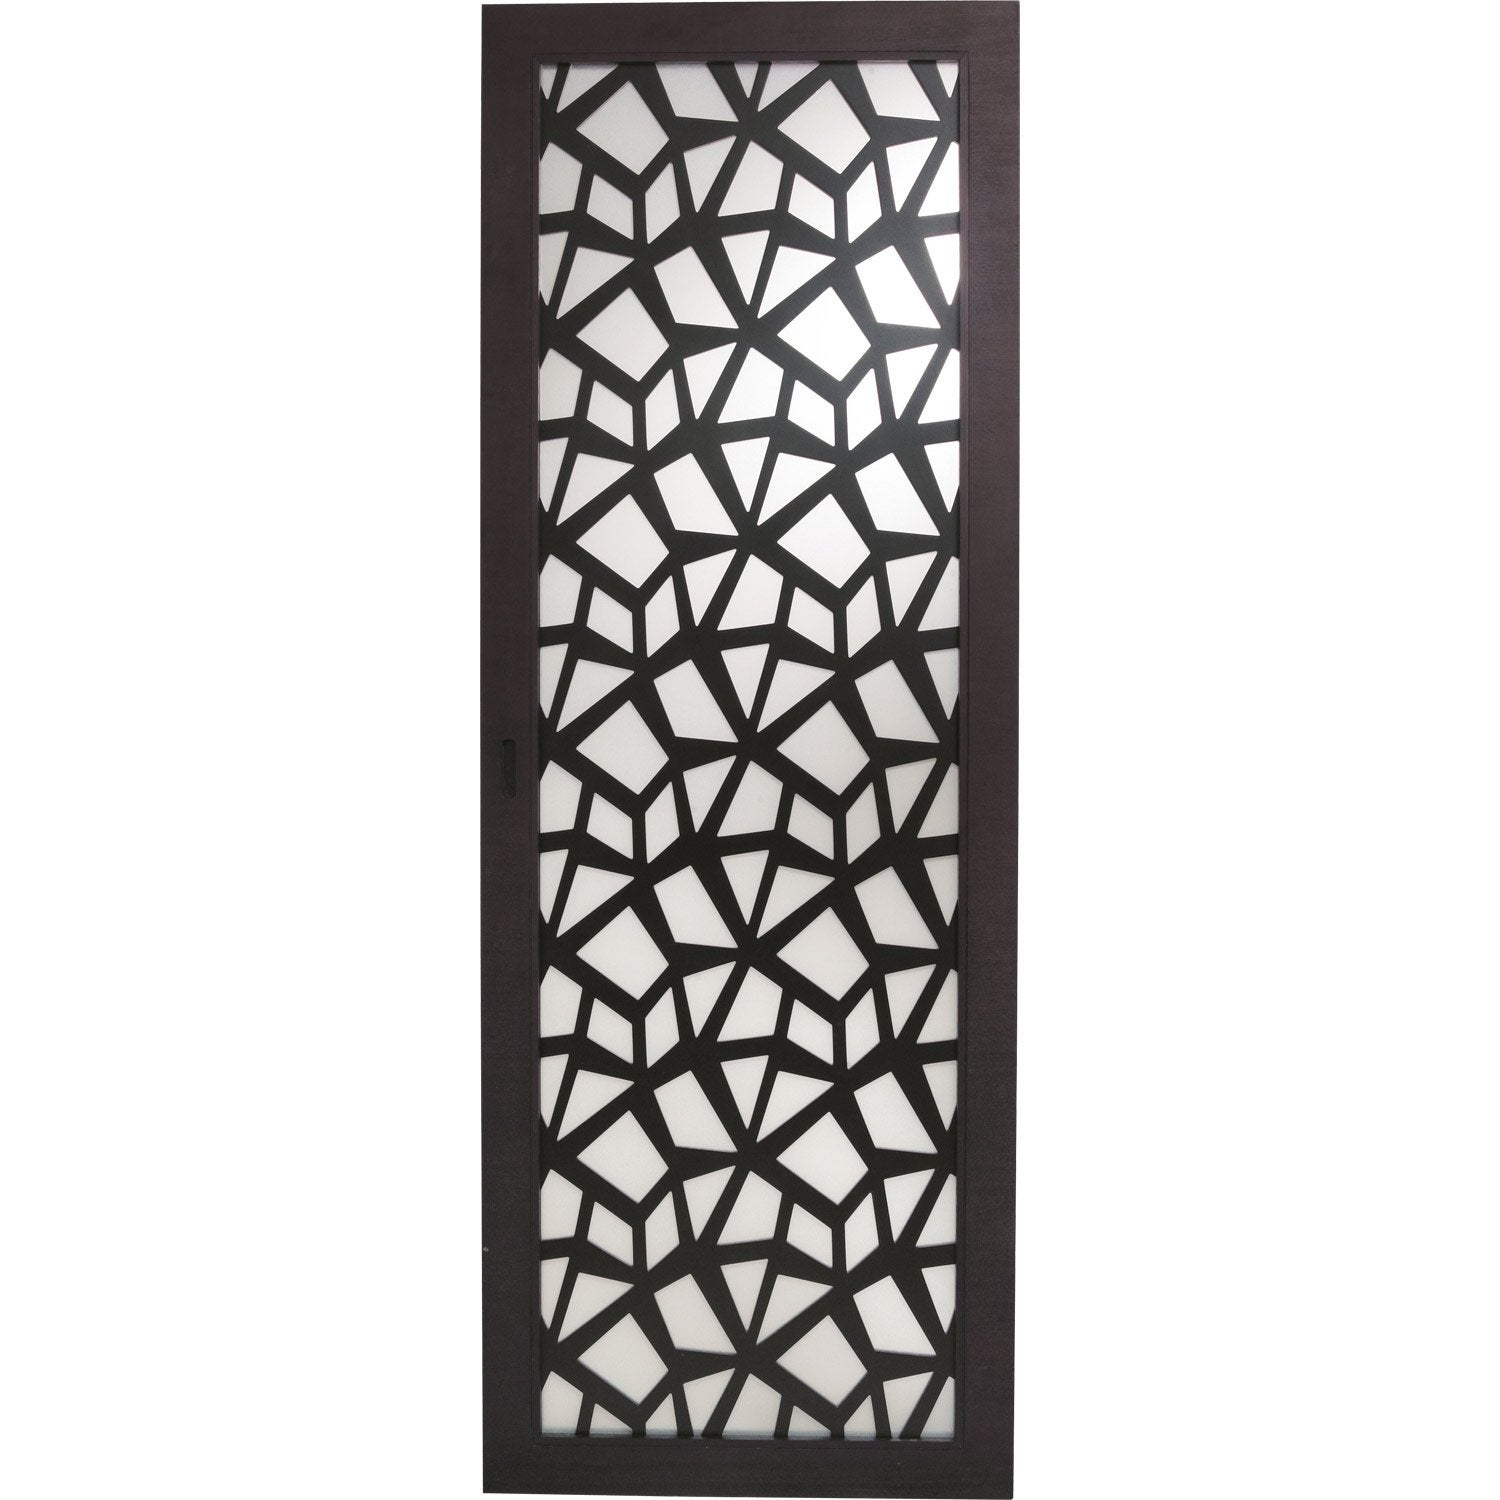 Porte coulissante crash artens vitr e 204 x 83 cm for Porte en verre coulissante leroy merlin